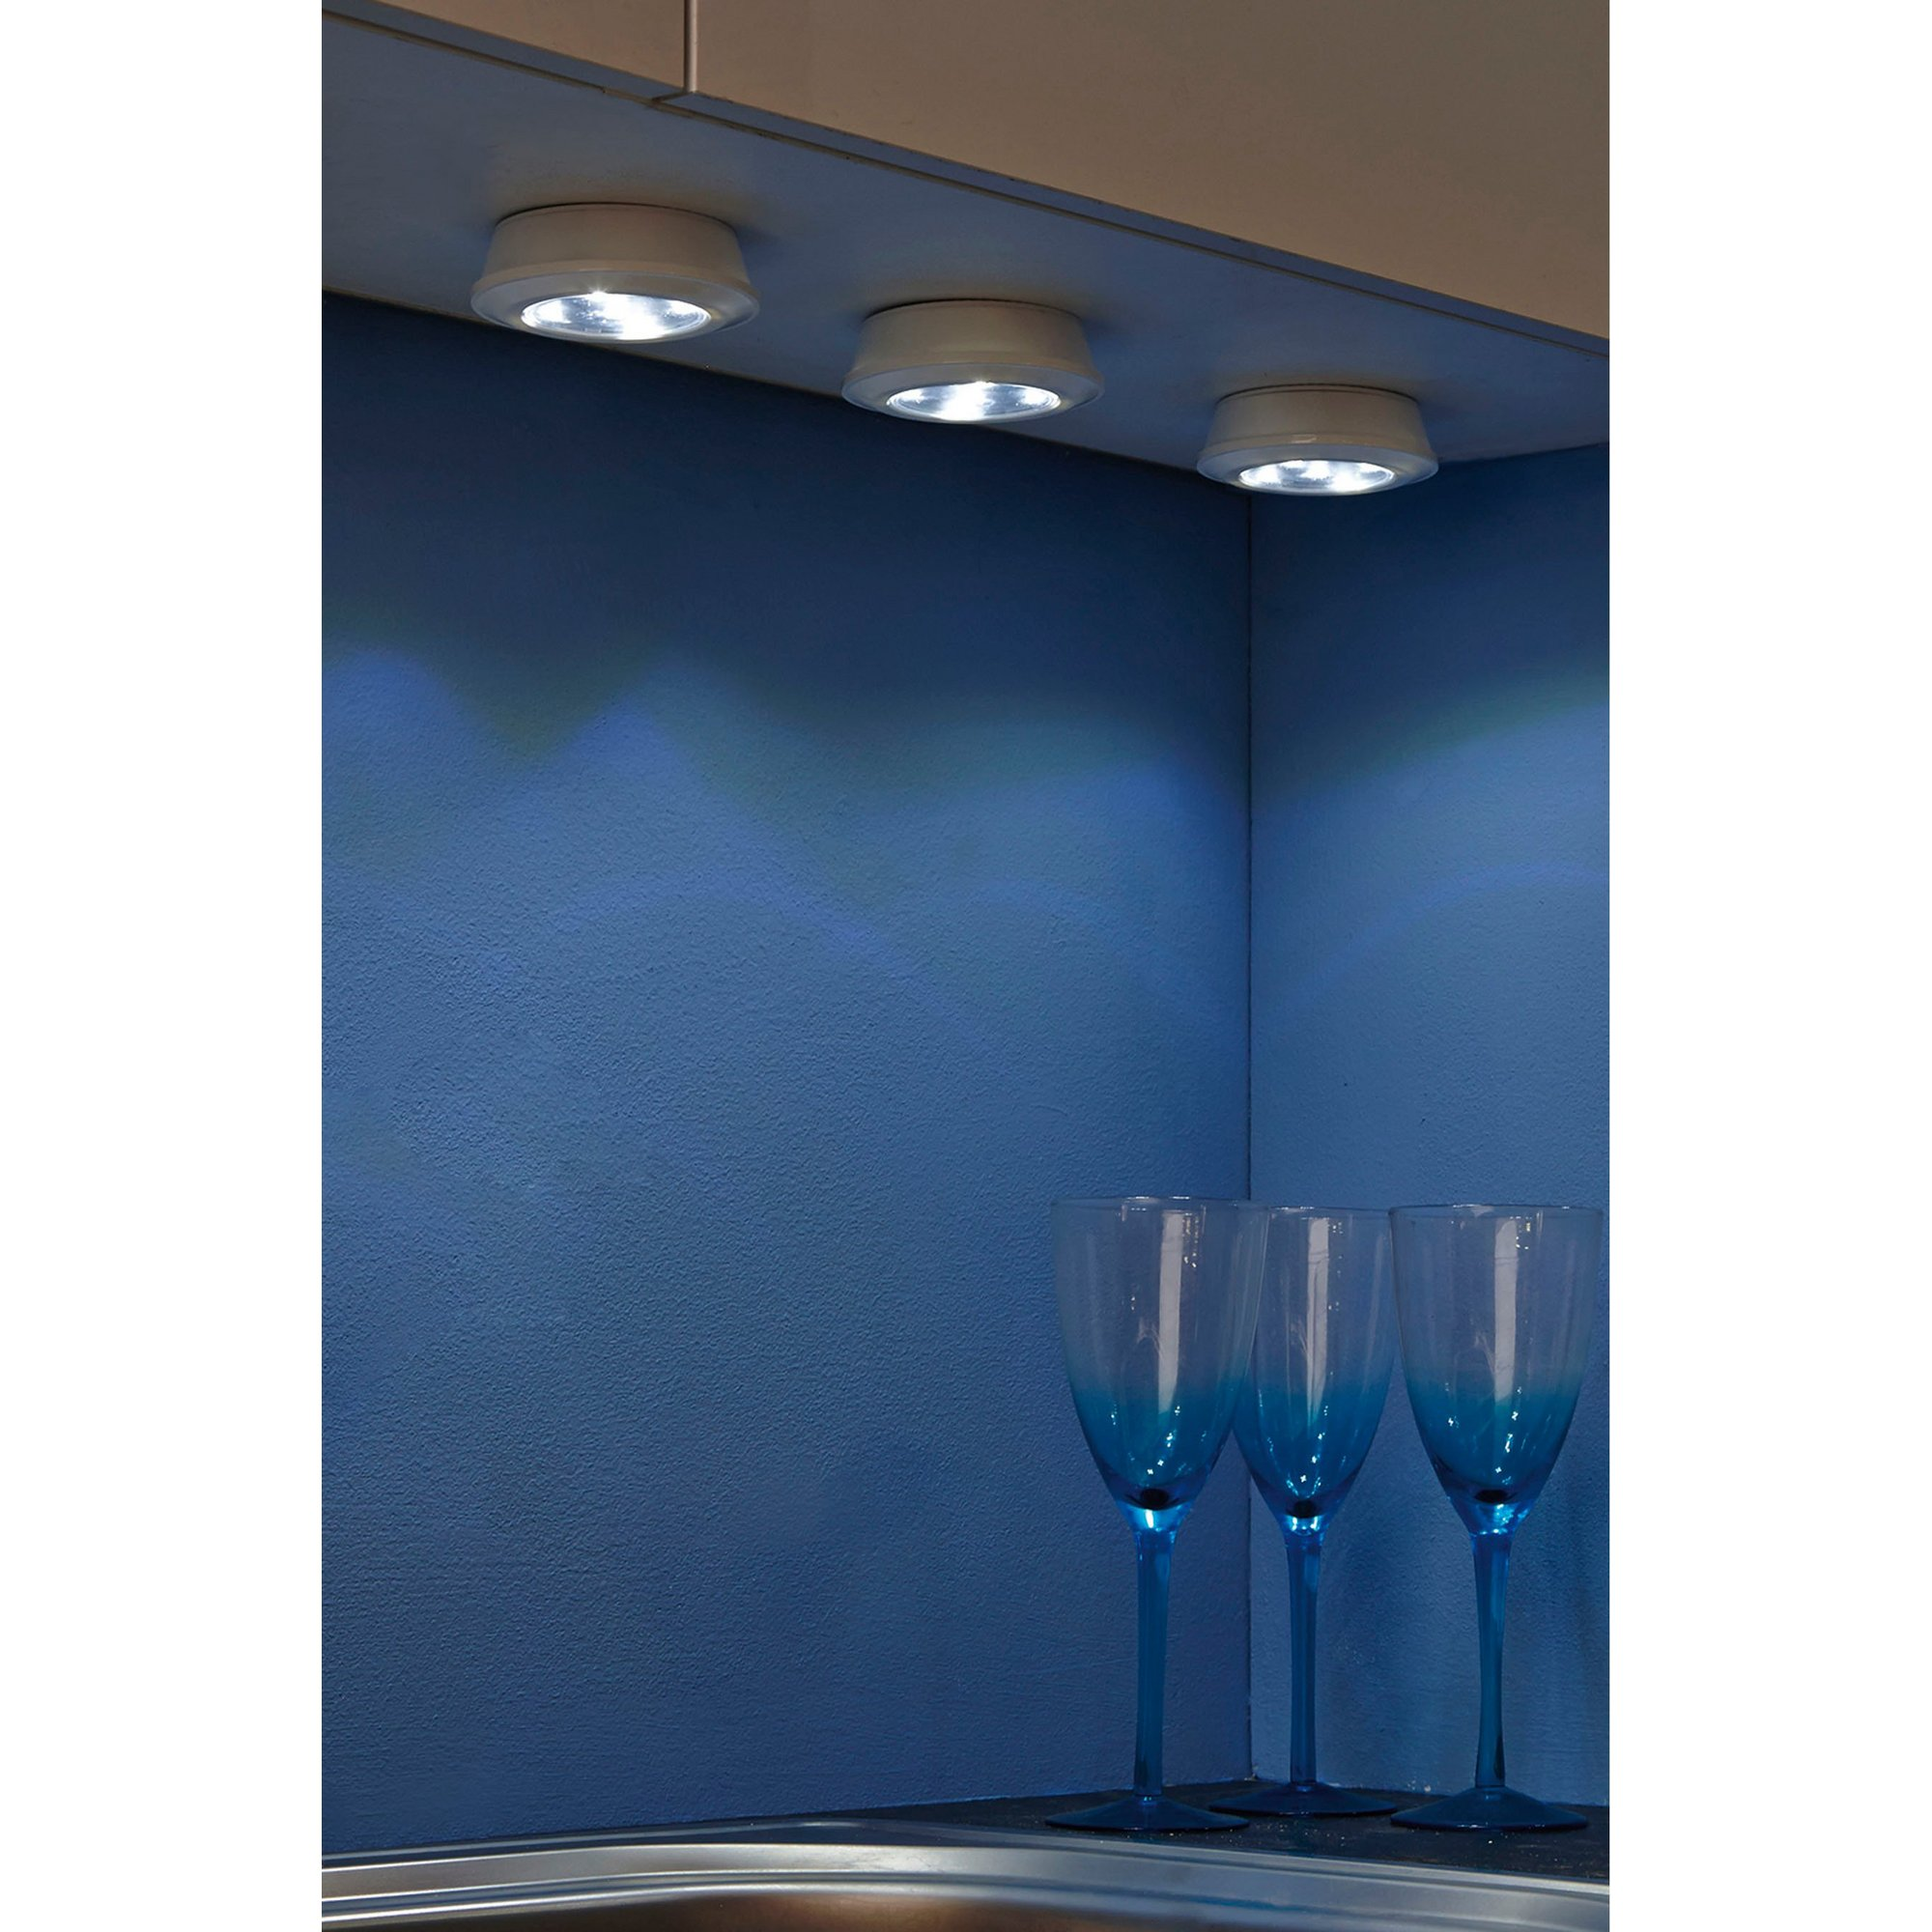 Image of 6-Piece Wireless Push Lights and Remote Control